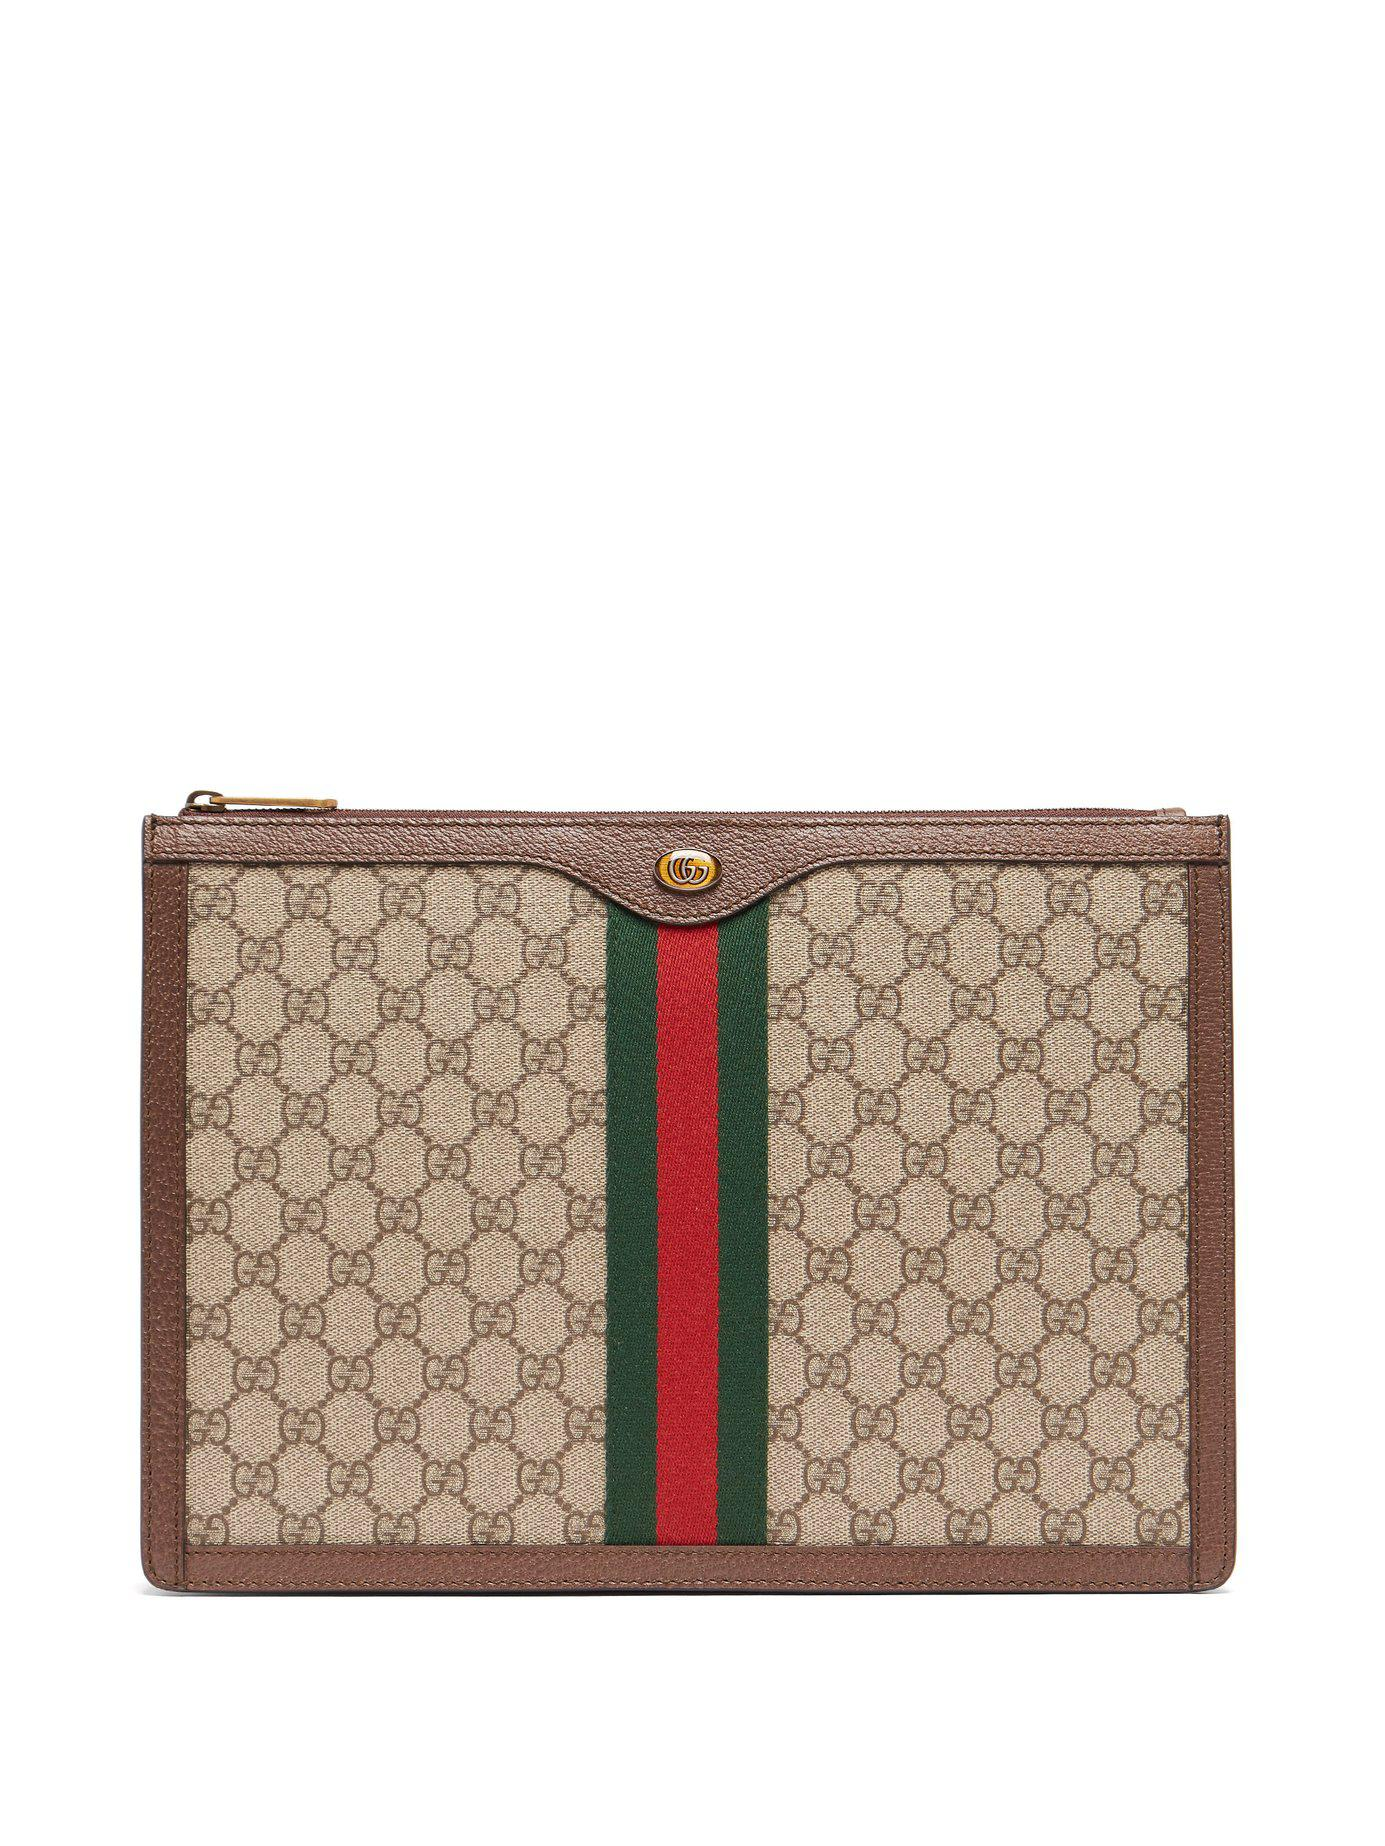 7524cf2f2a2 Lyst - Gucci Gg Supreme Canvas And Leather Portfolio in Natural for Men